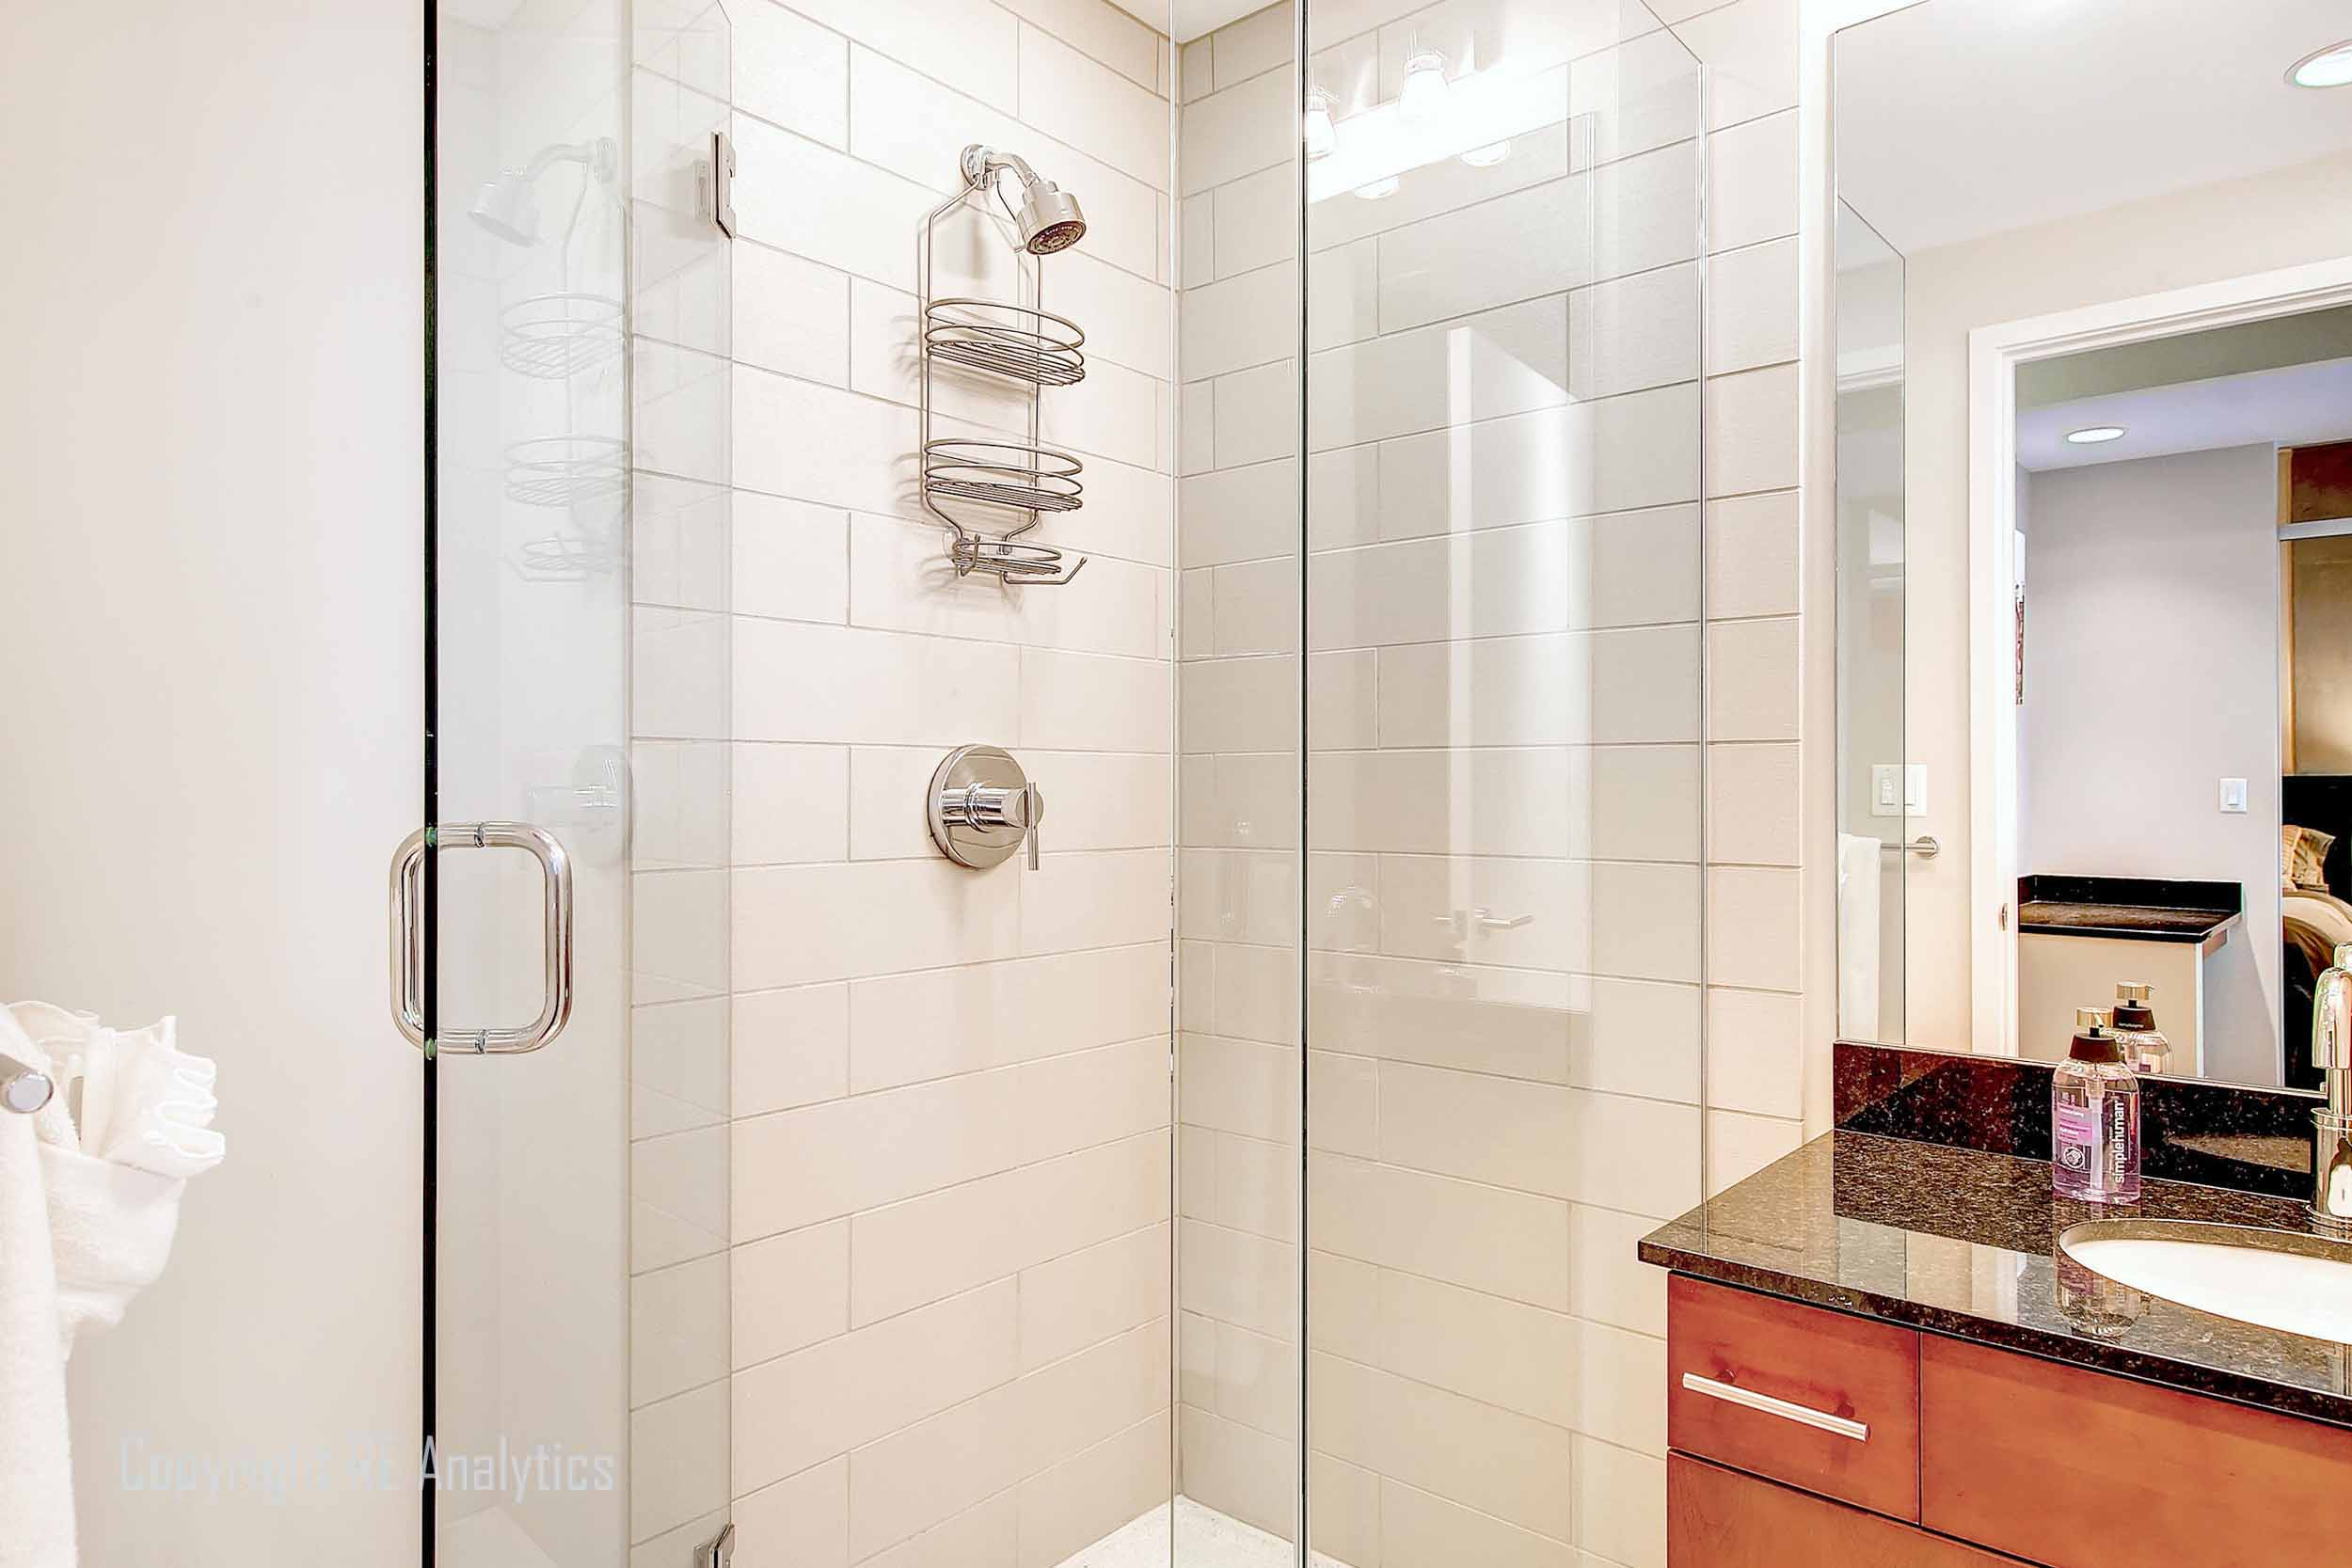 891 14th Street Unit 1702-print-016-Bathroom-2700x1800-300dpi.jpg